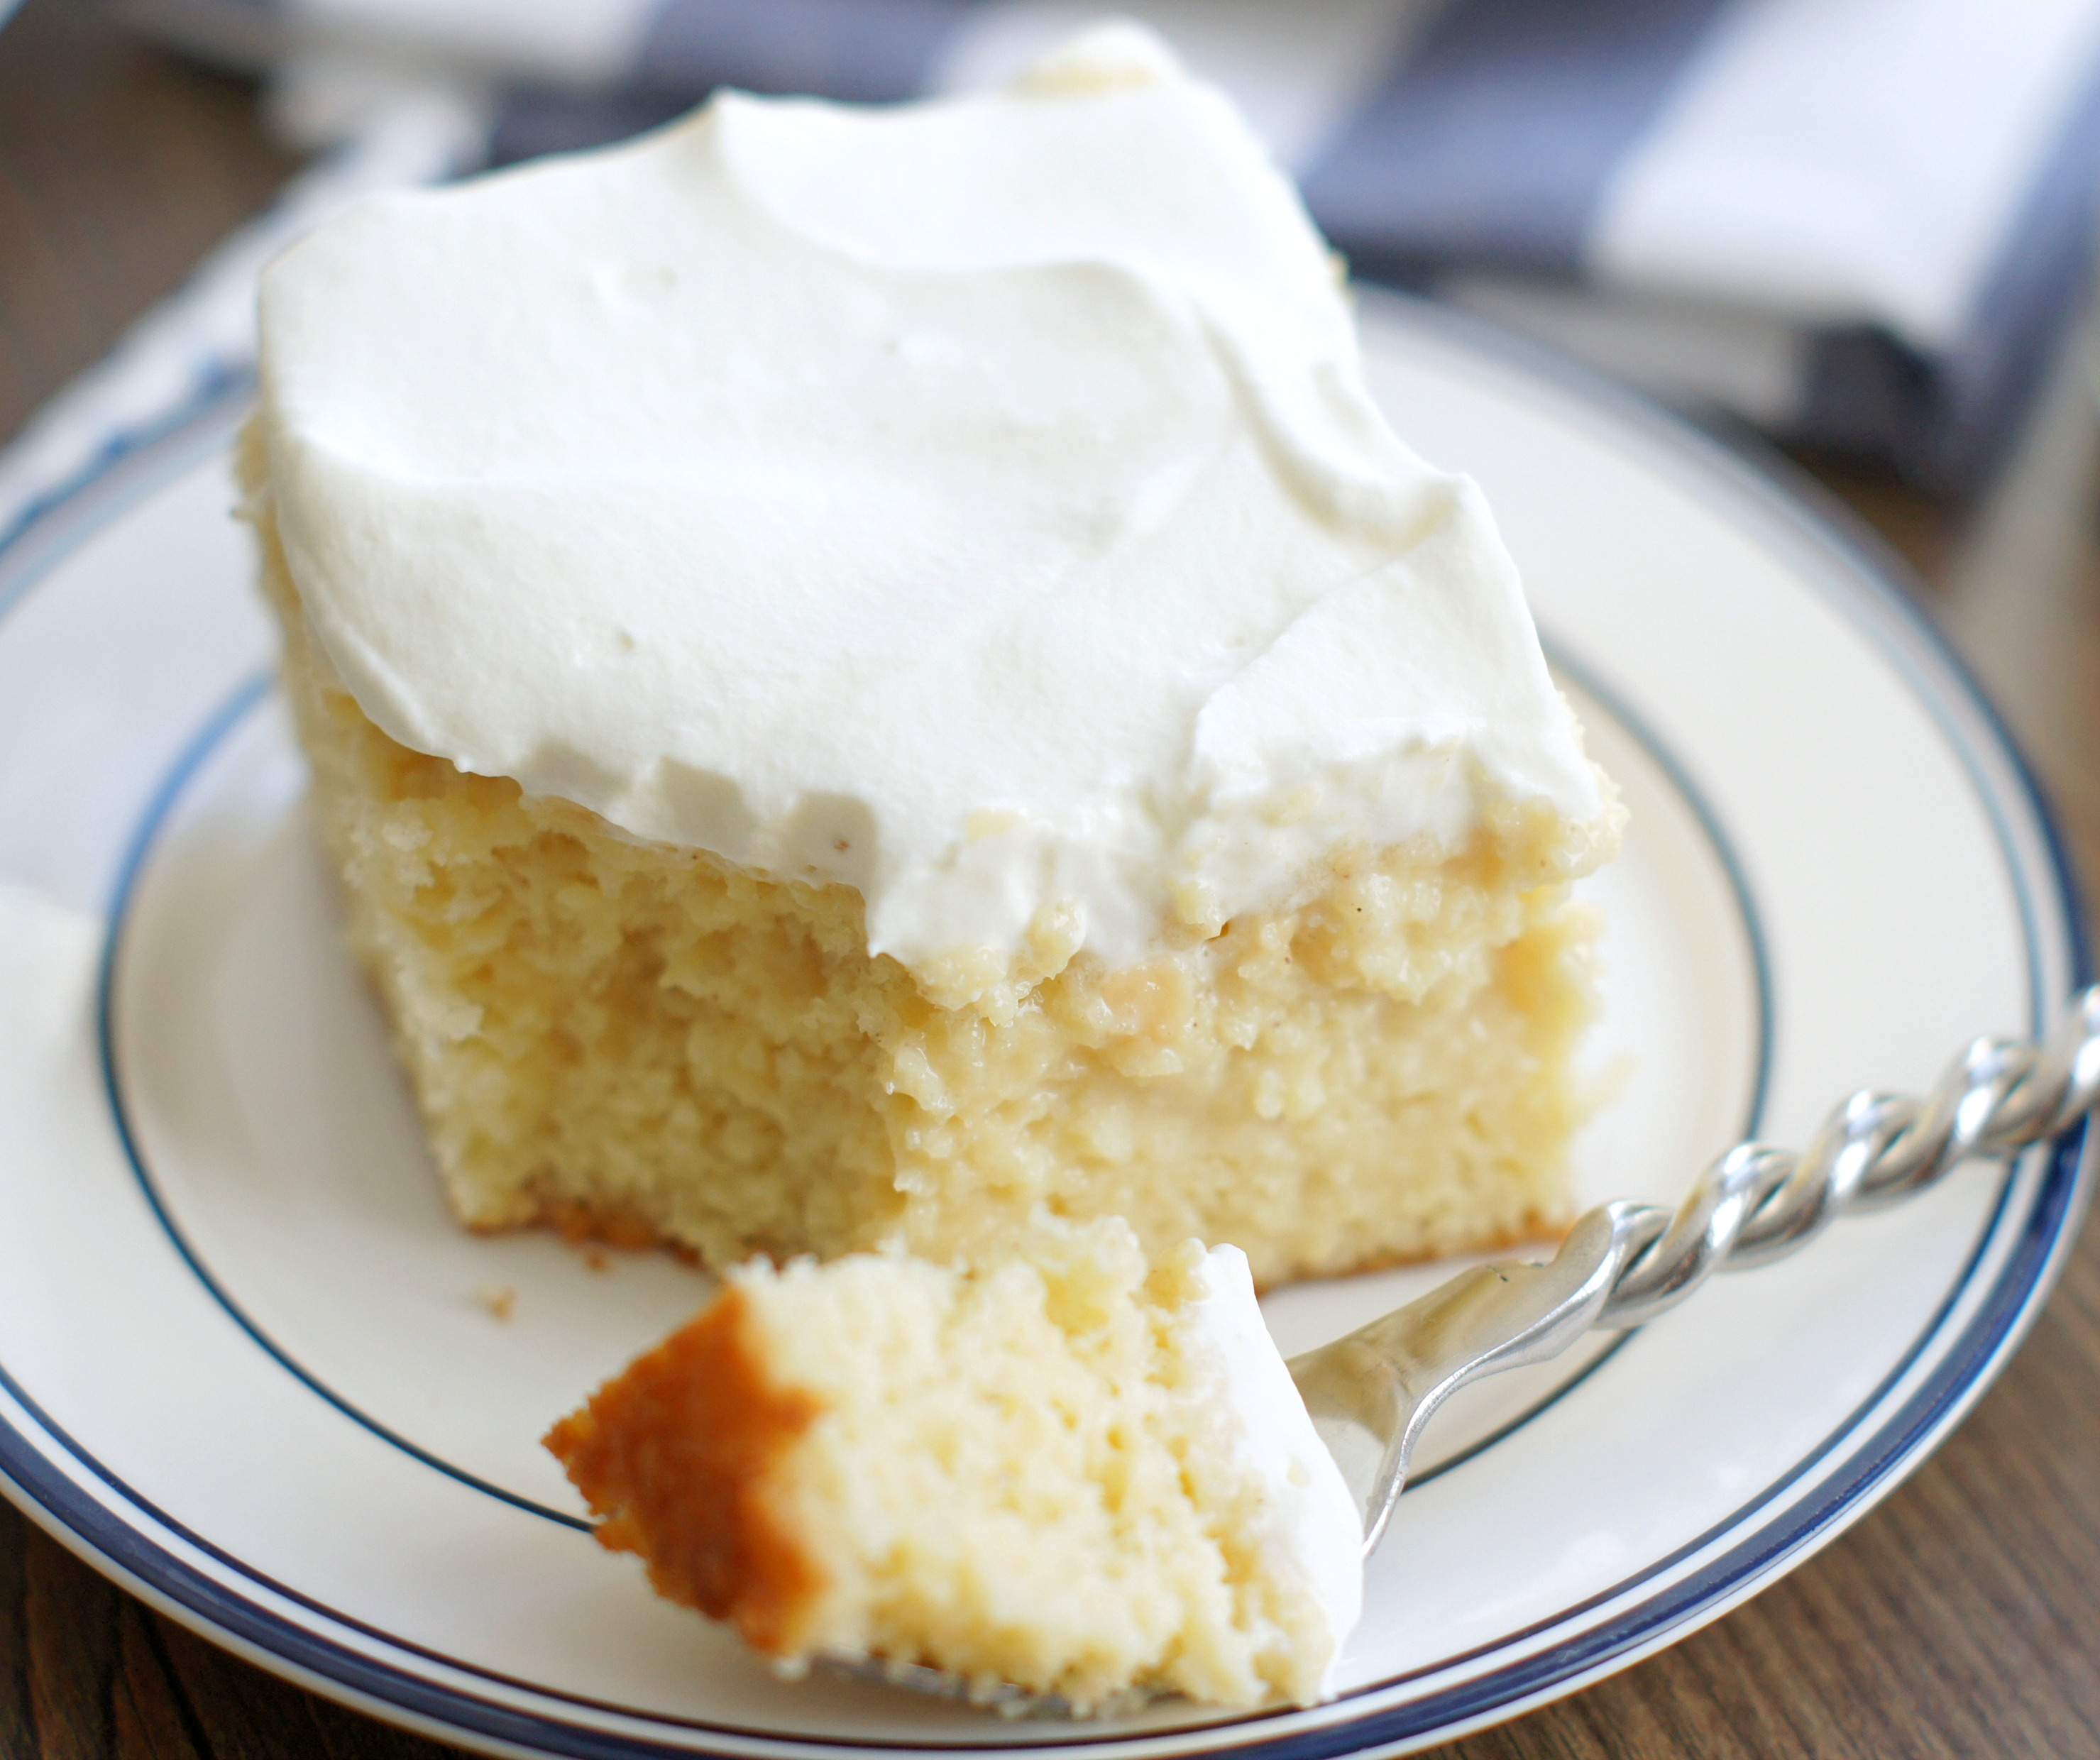 A piece of tres leches cake